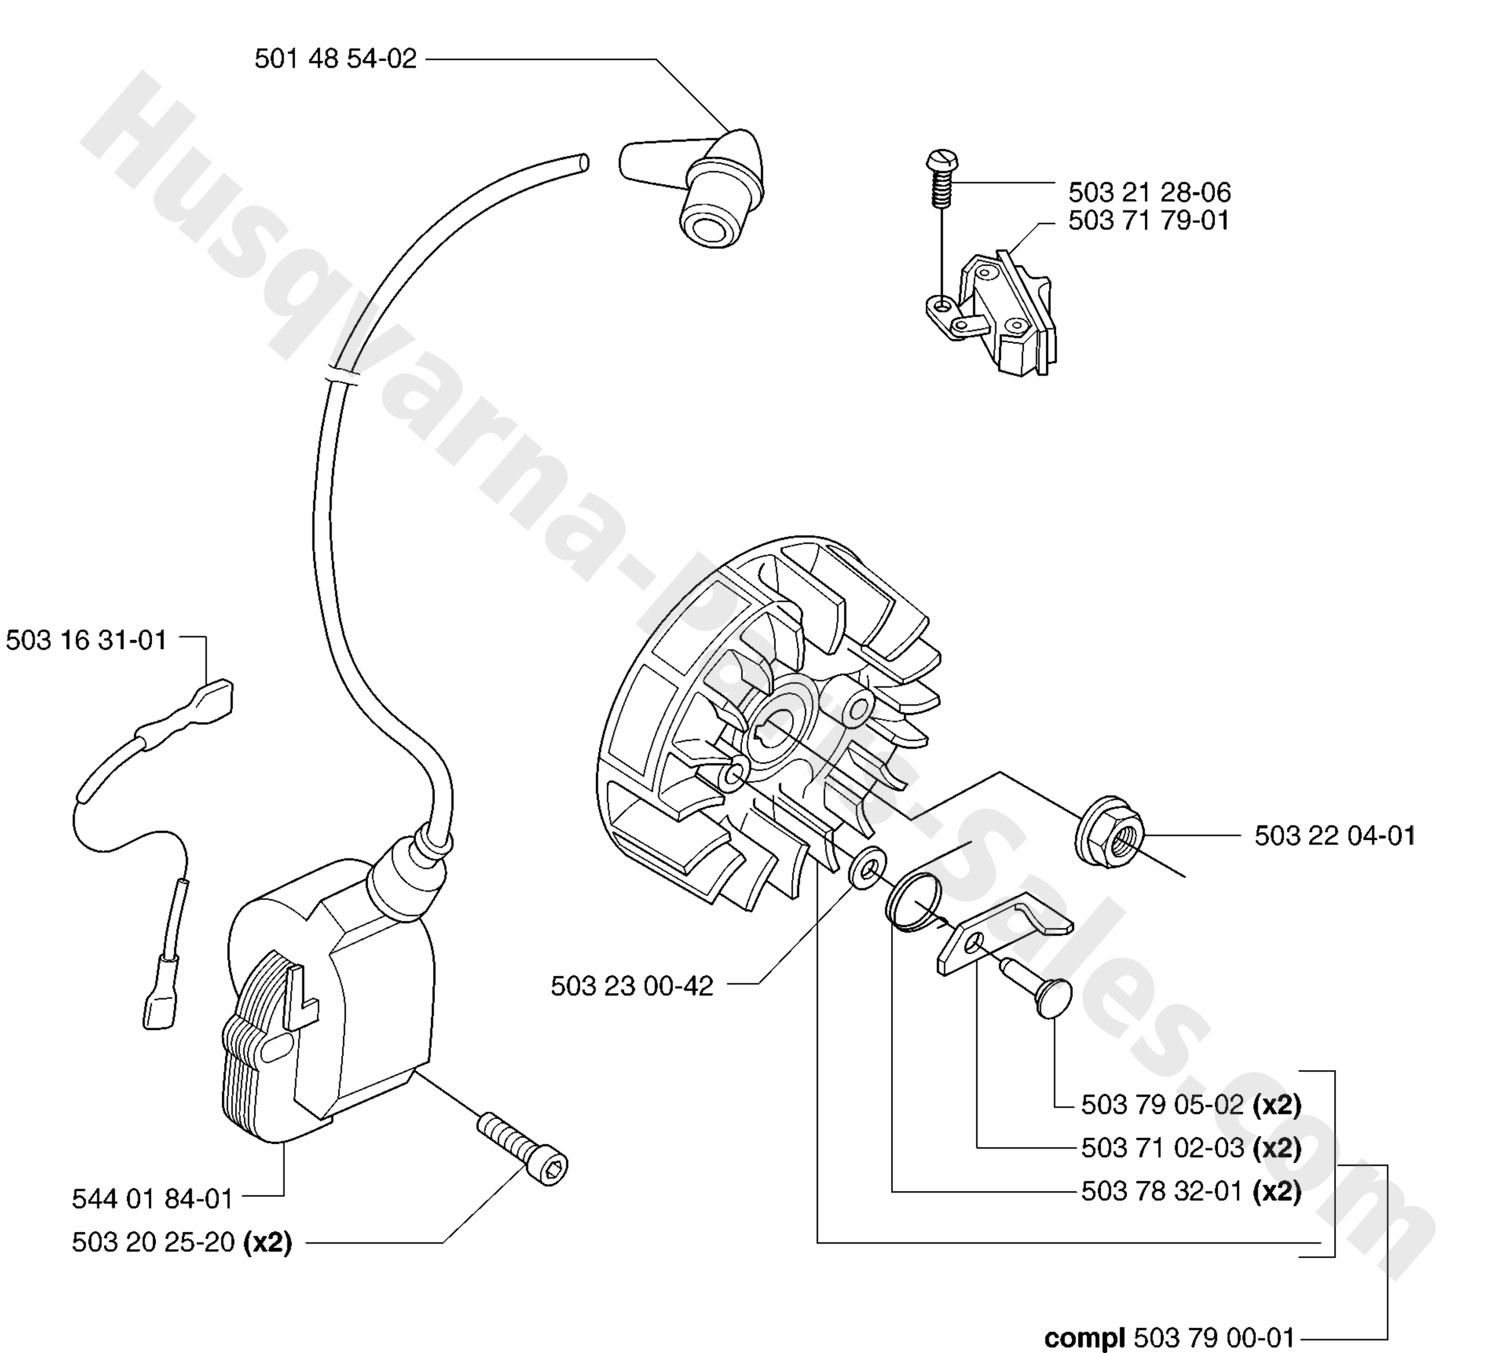 Maxresdefault further Image further Hqdefault also Hqdefault furthermore Iwl. on ignition coil wiring diagram